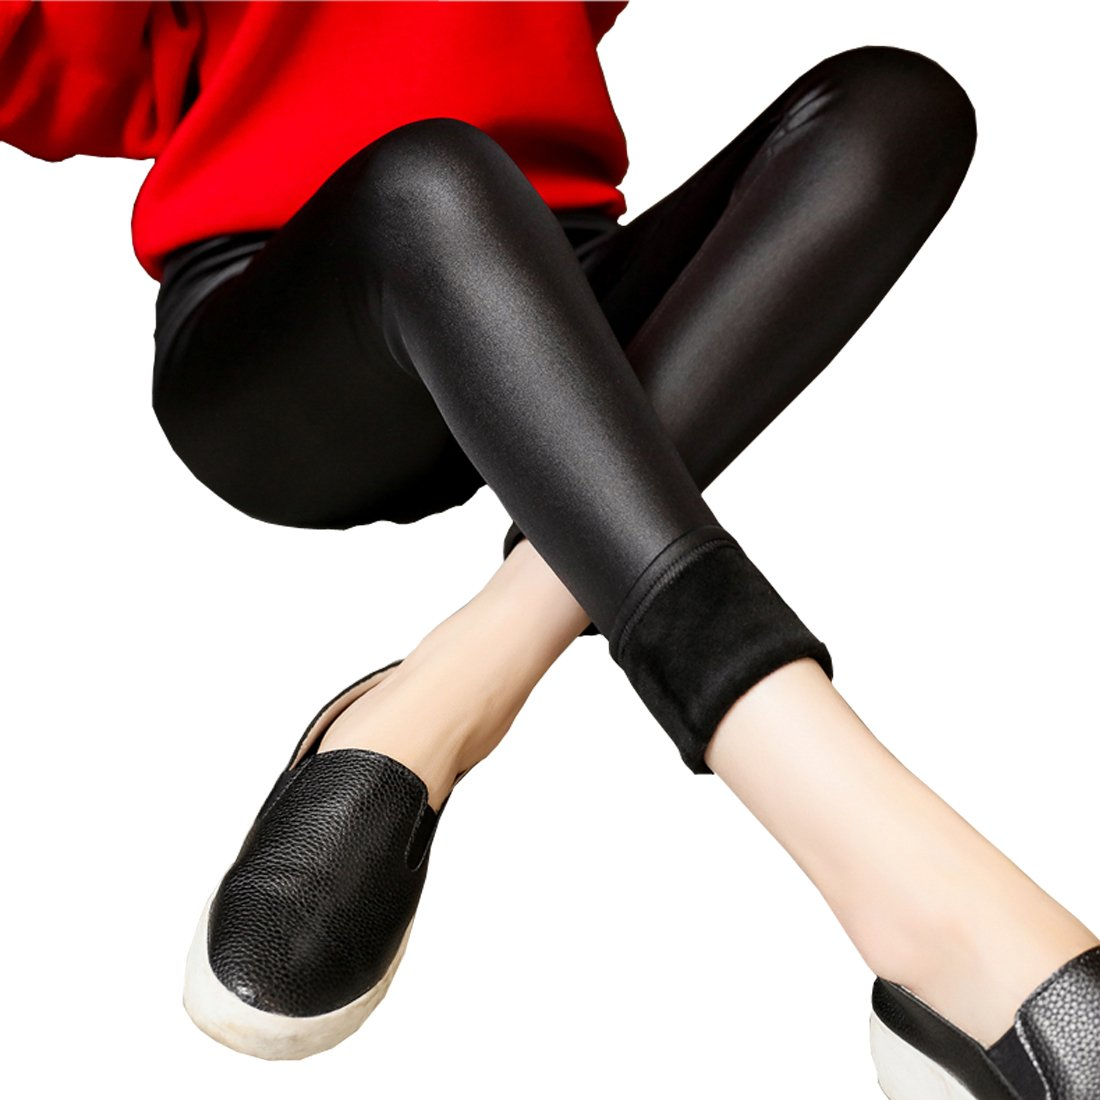 Weigou Woman Leggings Pants Winter Warm Thick Plus Velvet Faux Leather Skinny Legging Trousers (S, Black)